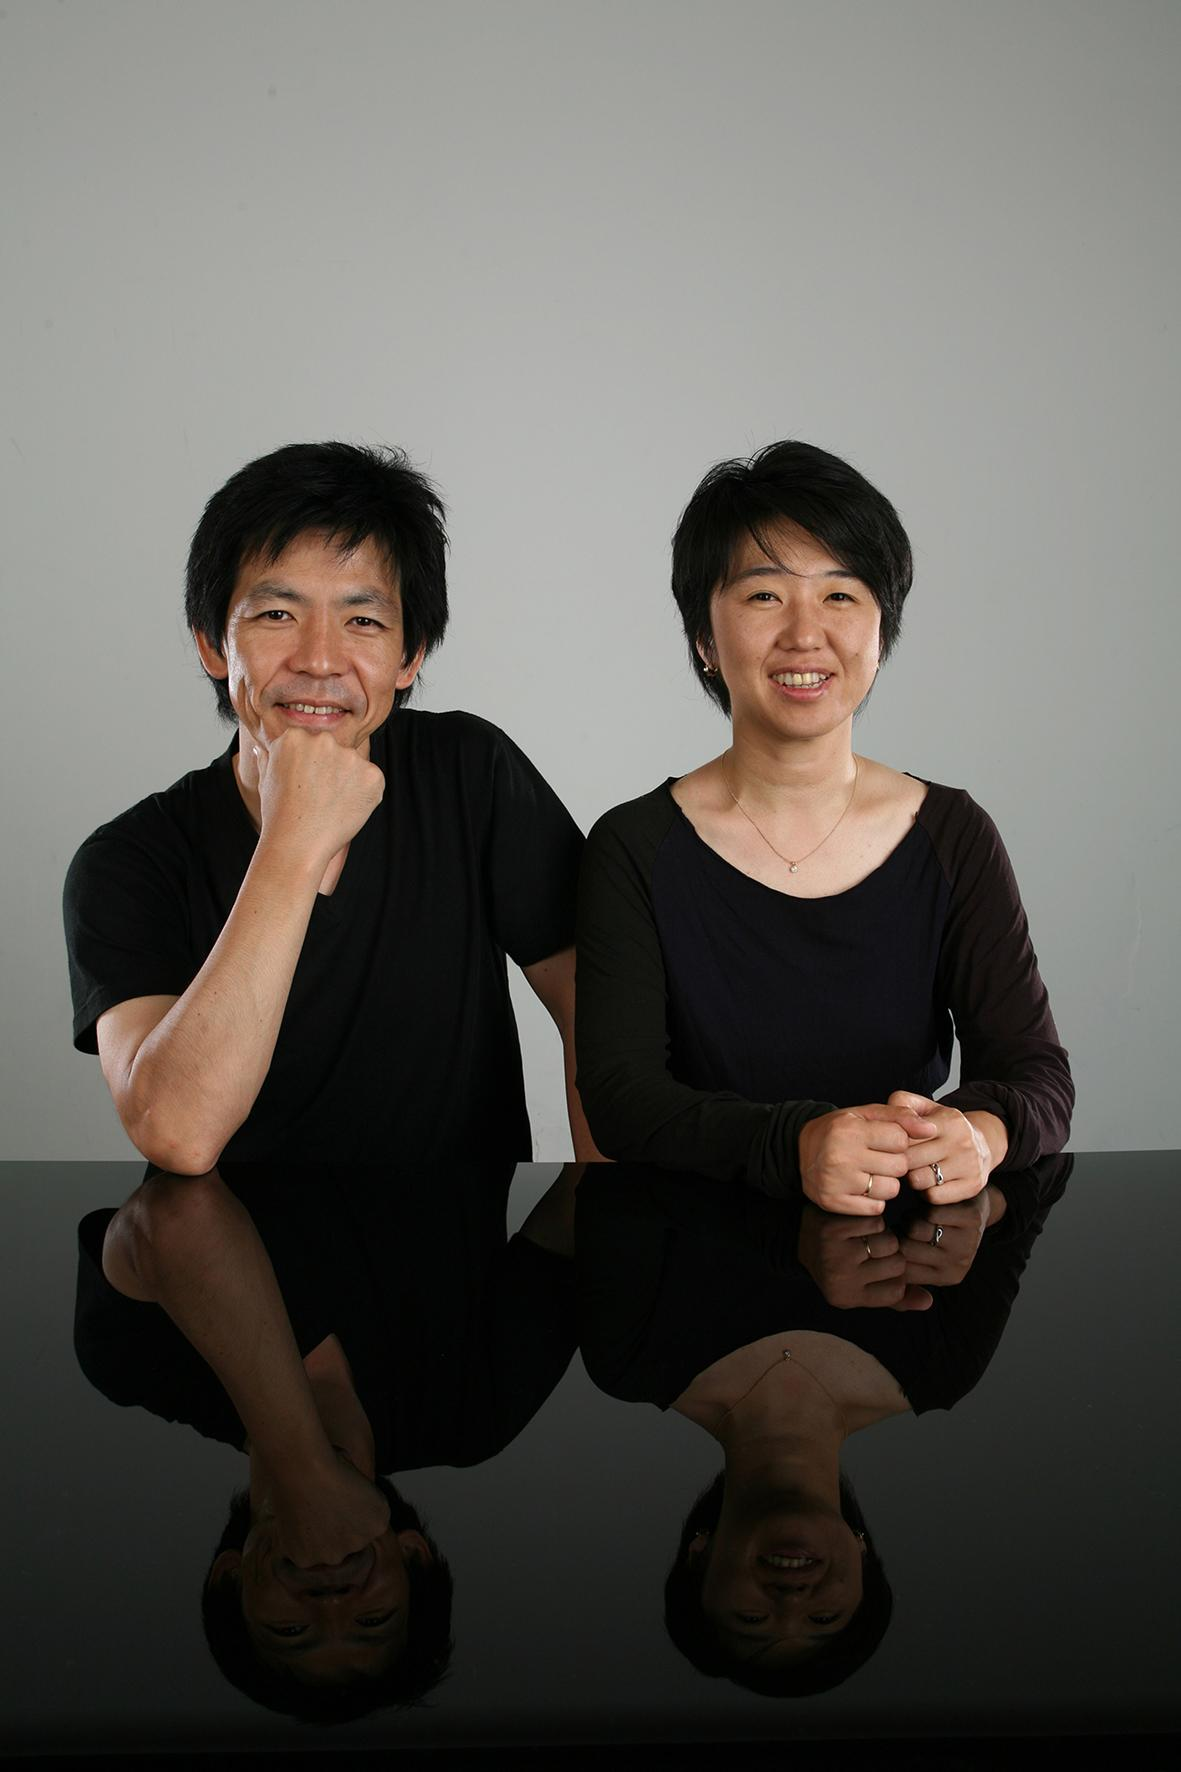 A portrait shows a man and woman wearing black and resting their arms on a glossy black tabletop in front of them.